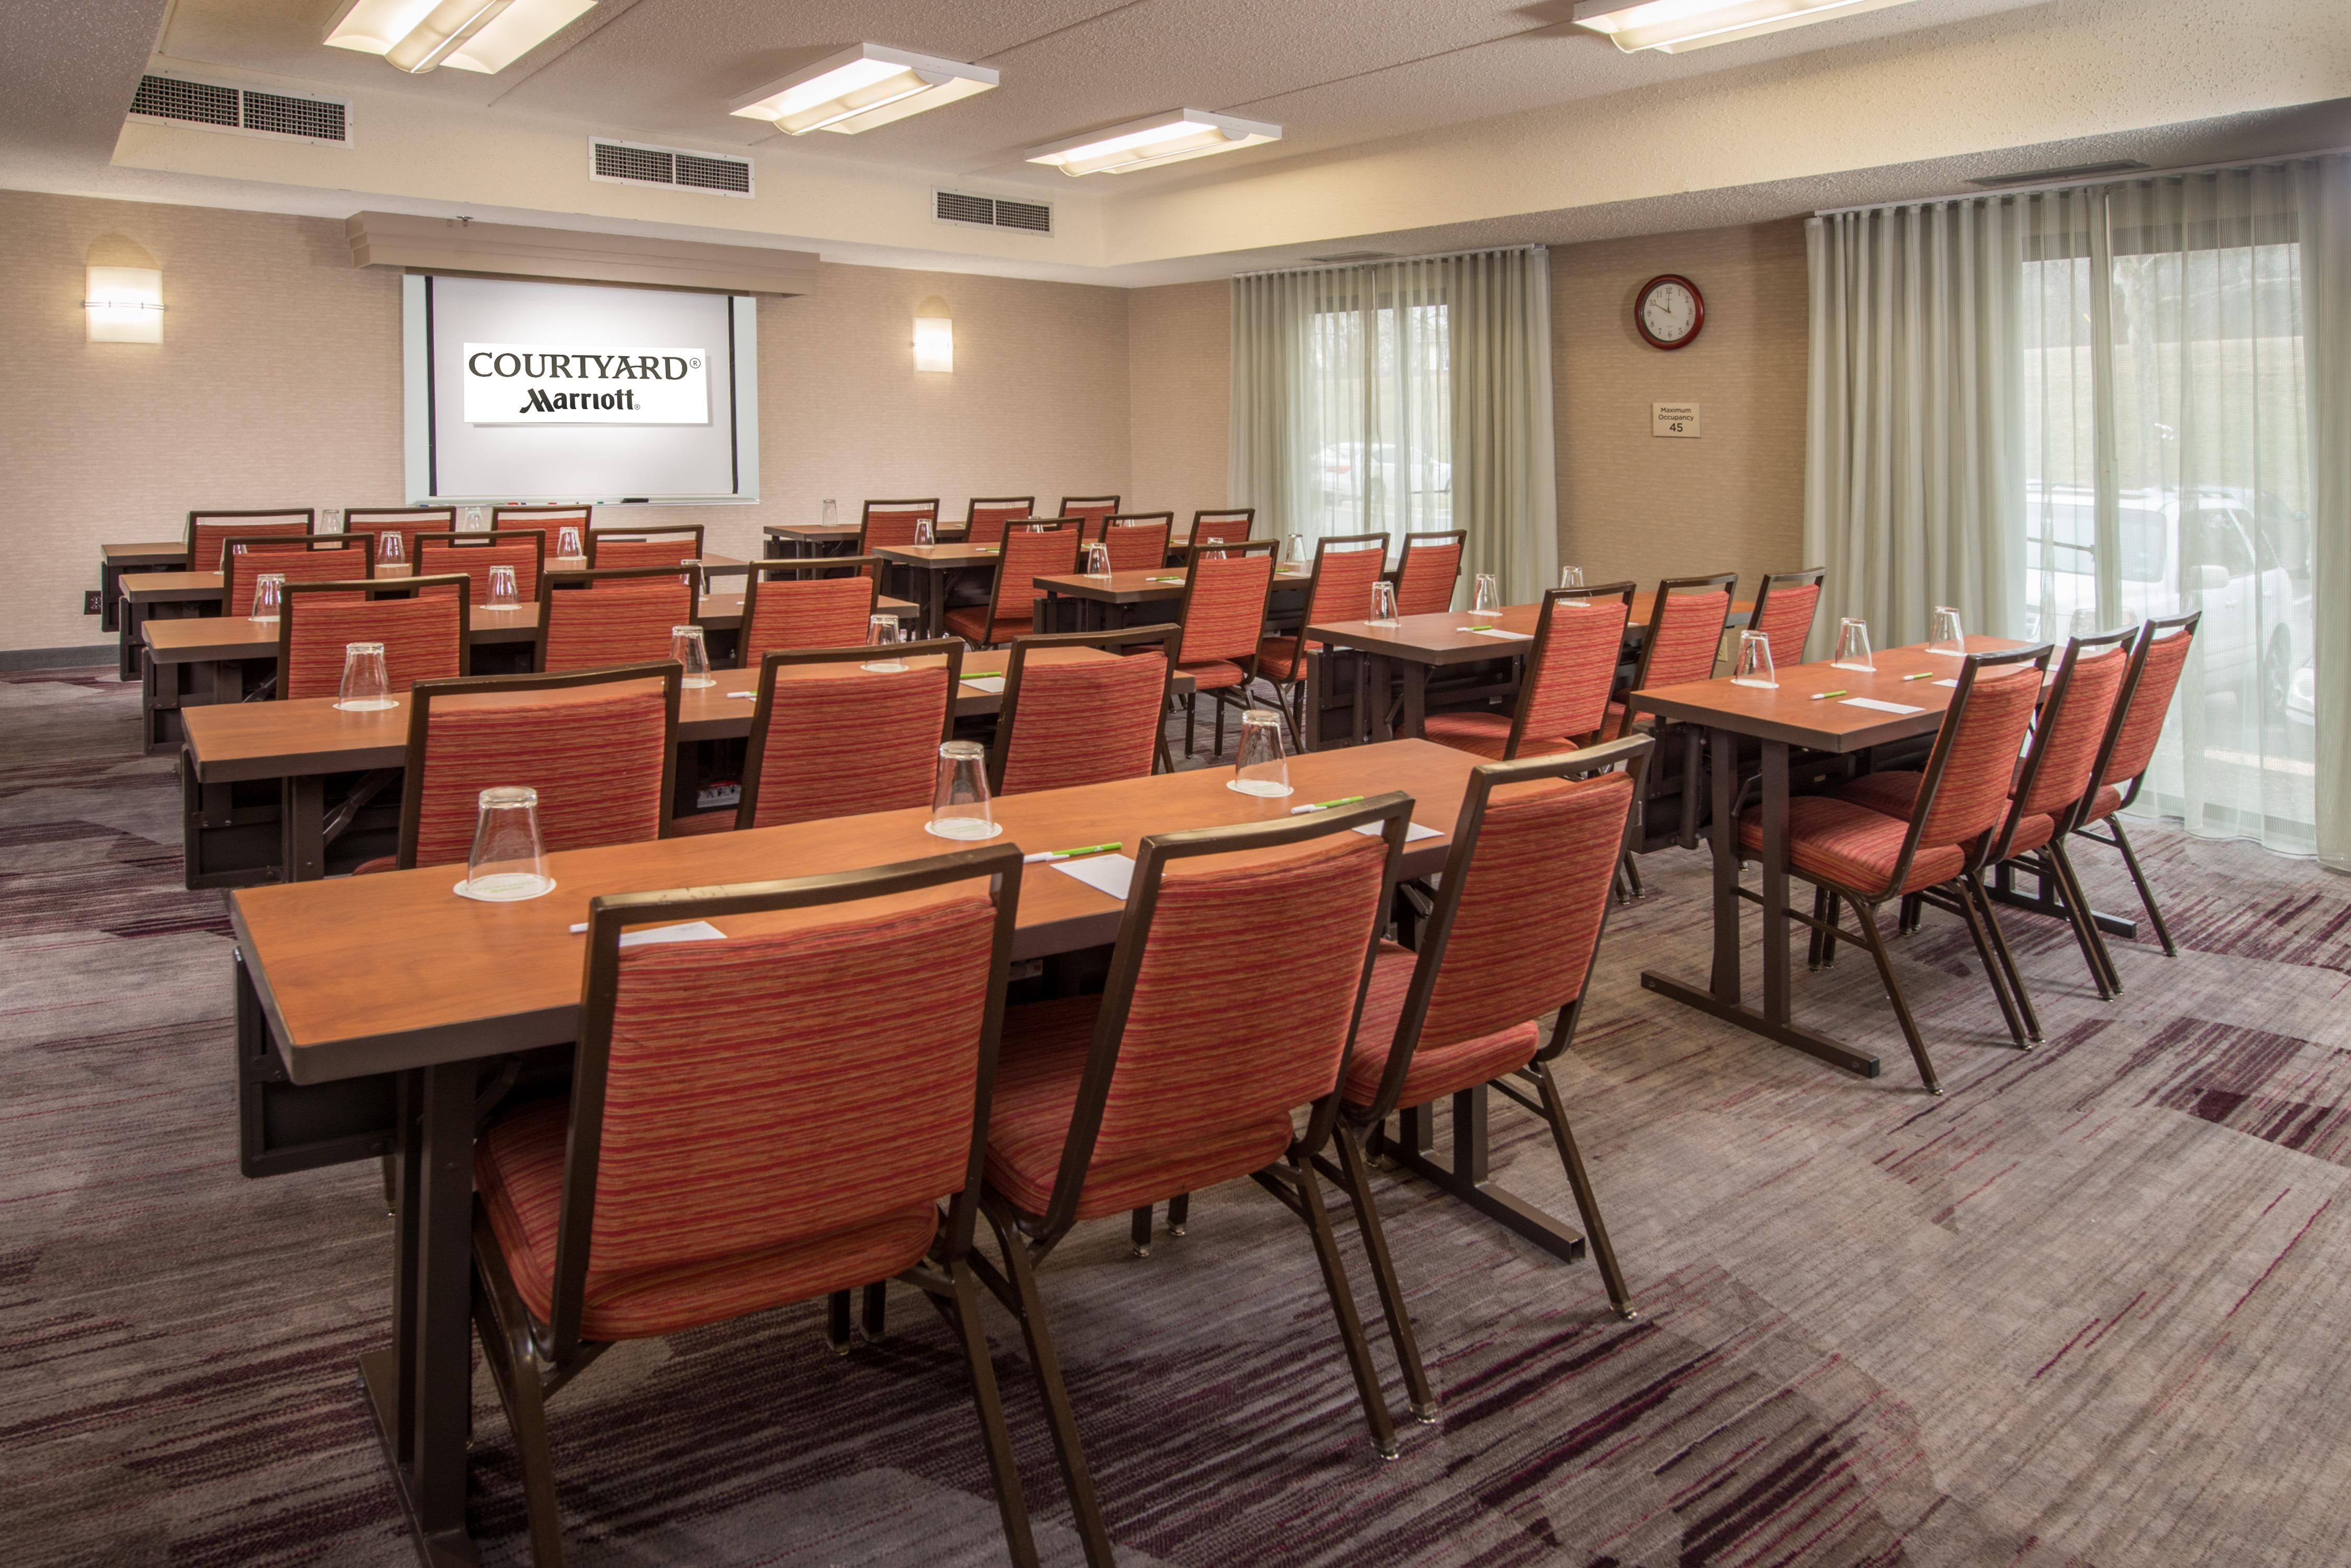 Courtyard by Marriott Baltimore BWI Airport image 13